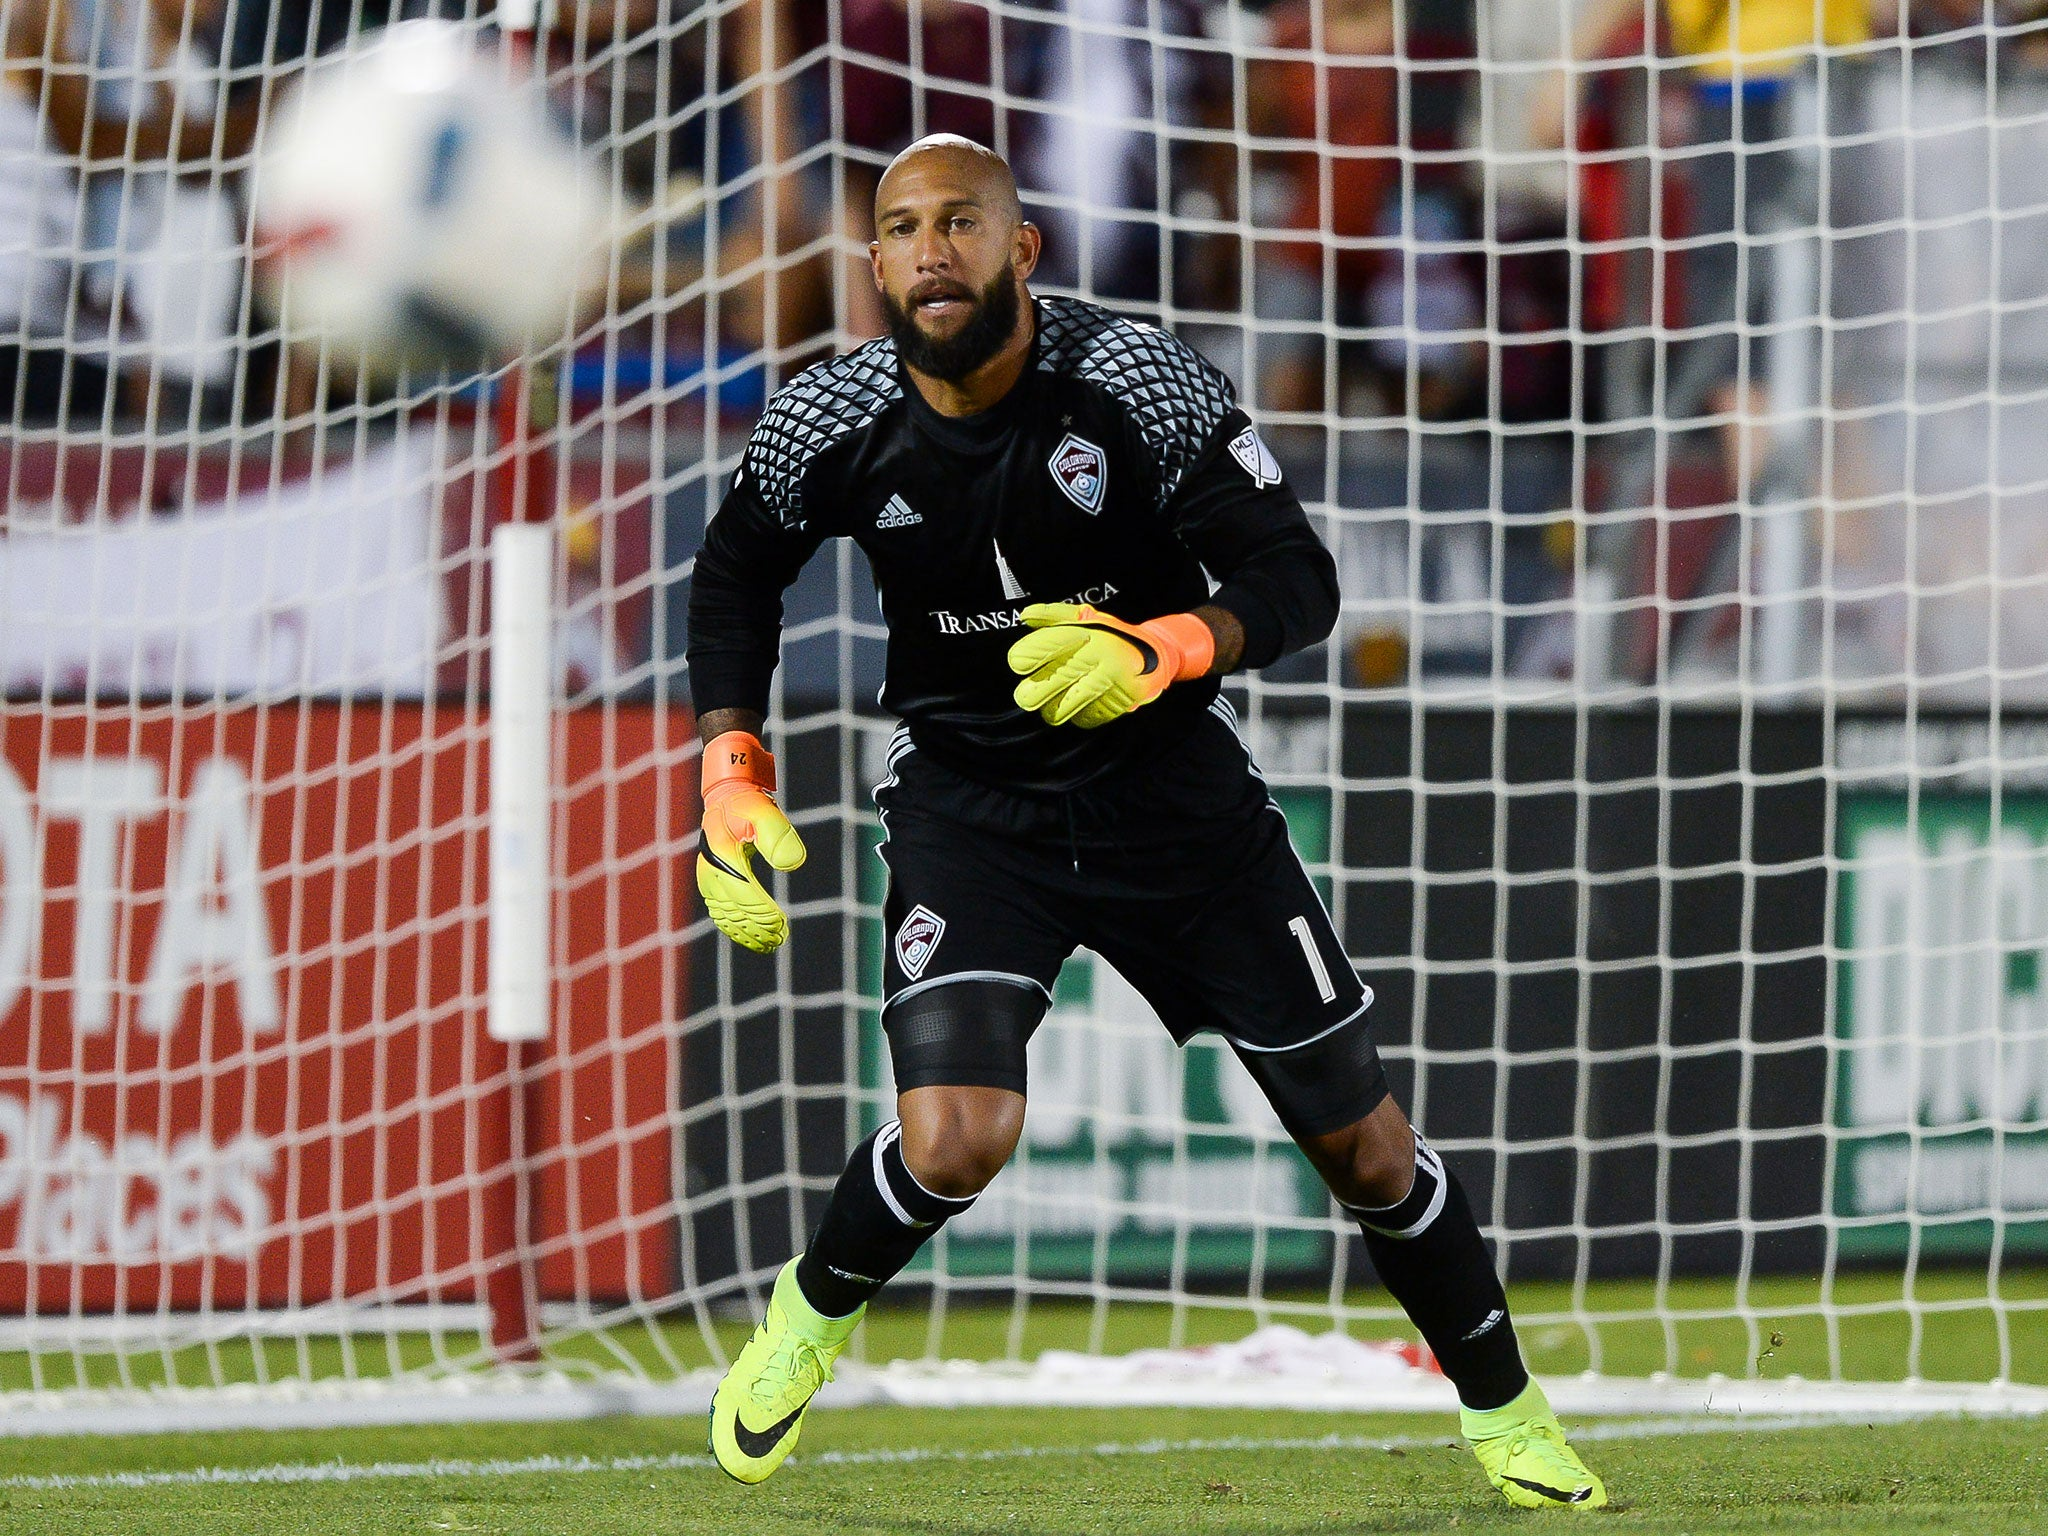 Tim Howard banned for three games and fined after calling fan 'motherf*****' in MLS game